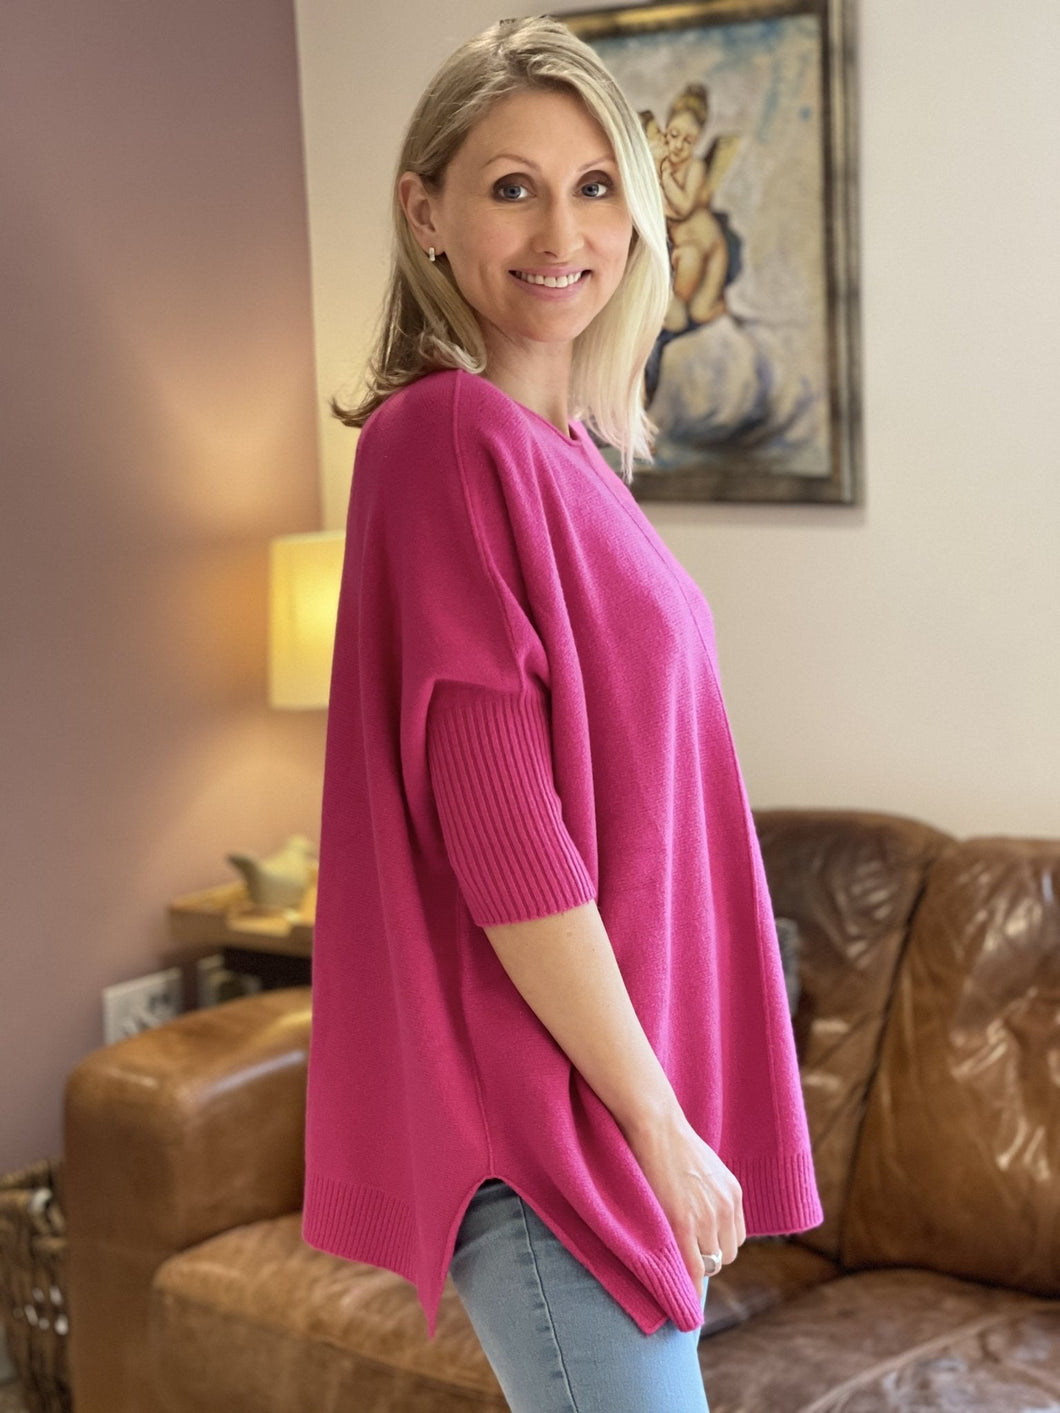 Soft Knit Baggy Jumper - Fuchsia Pink - LavenderLime